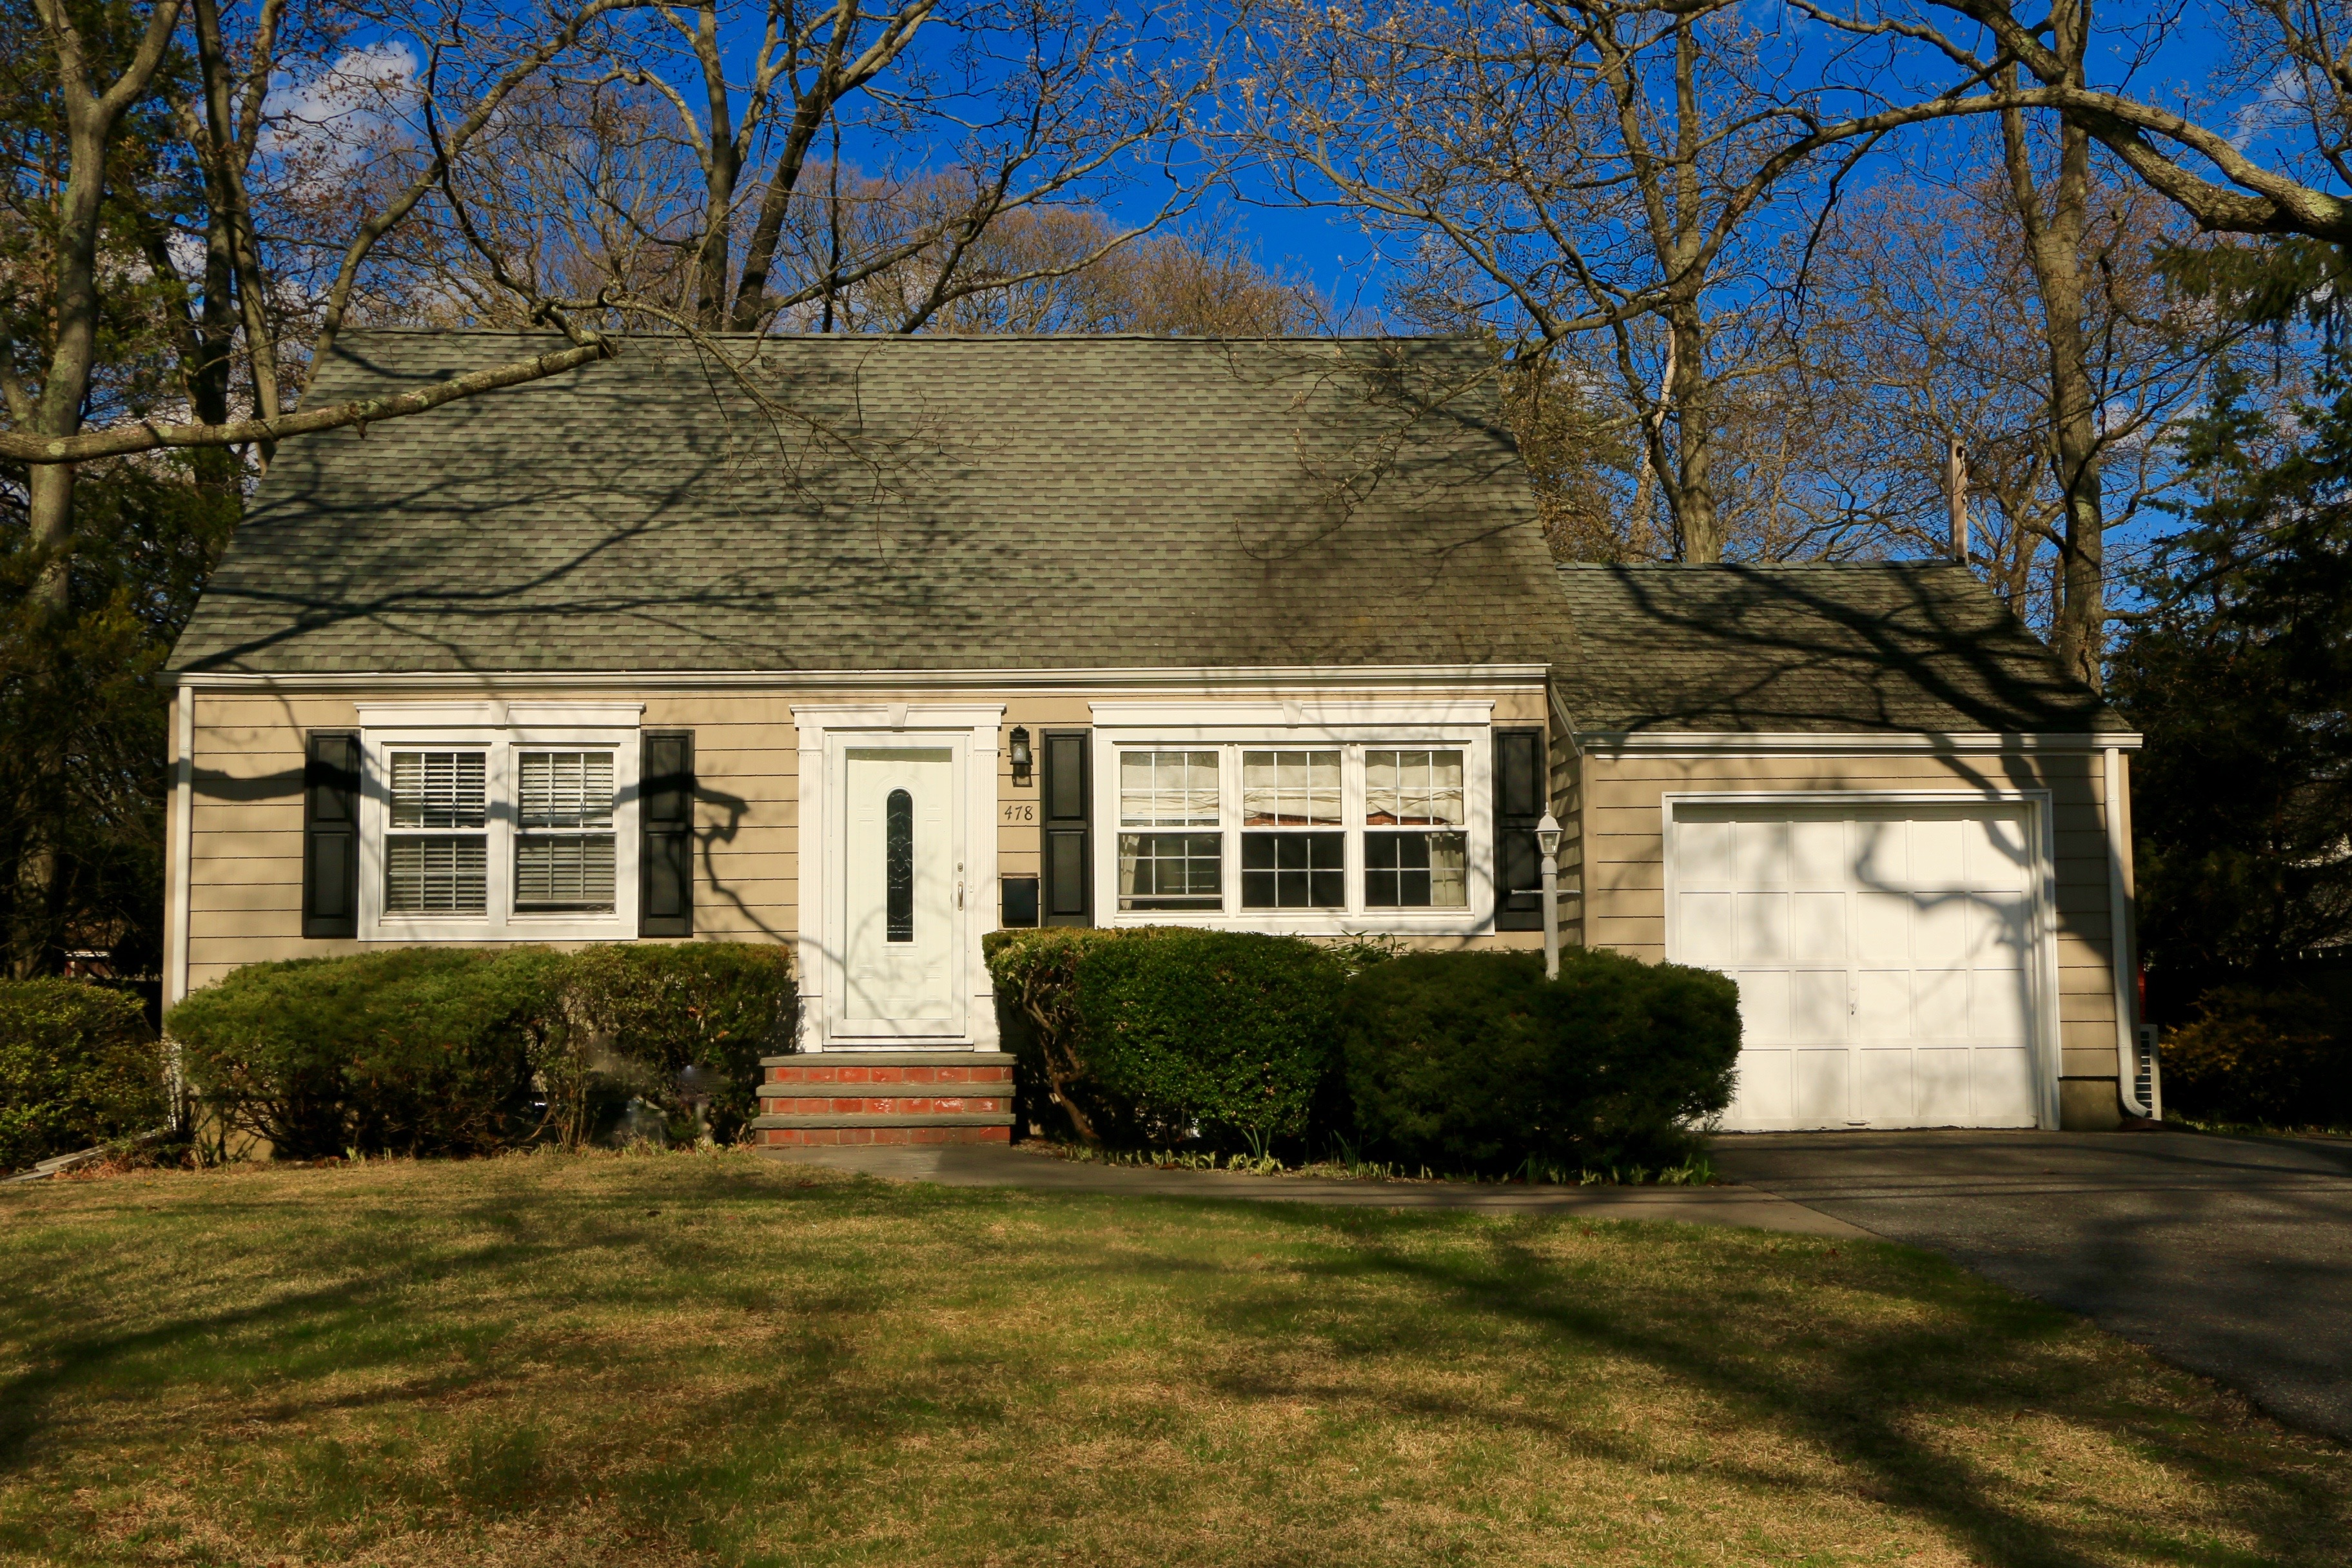 Brightwaters New York 478 Pine dr Brightwaters New